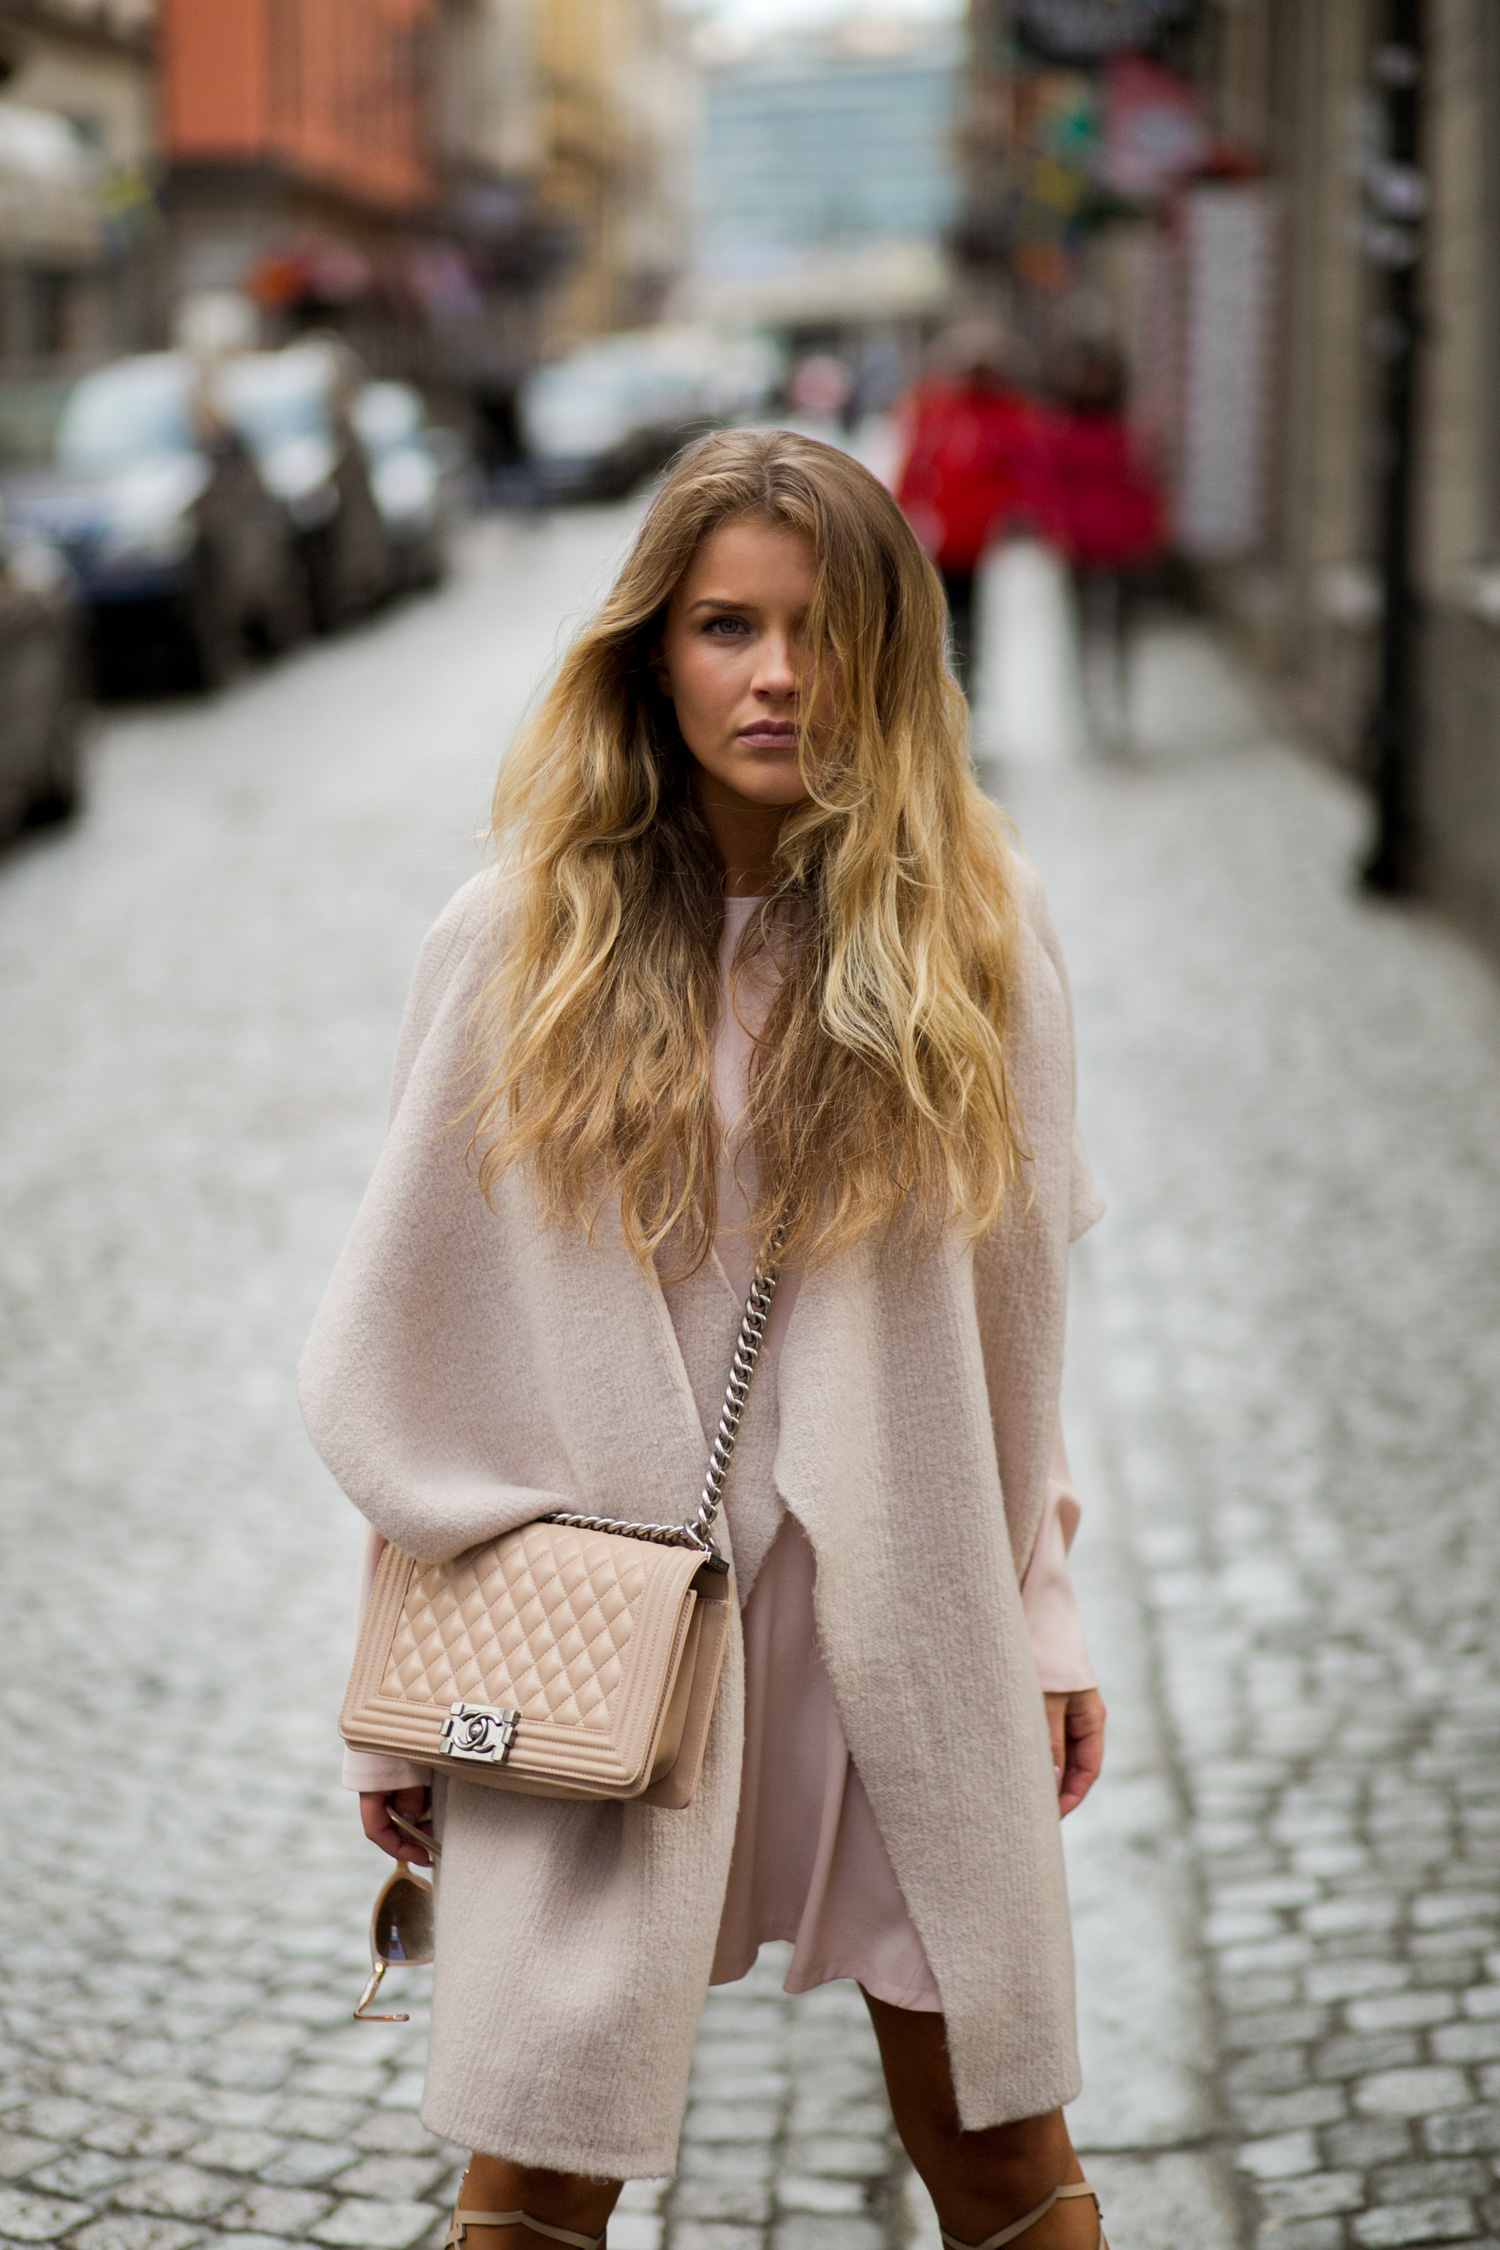 013-stockholm-blogger-fashion.jpg